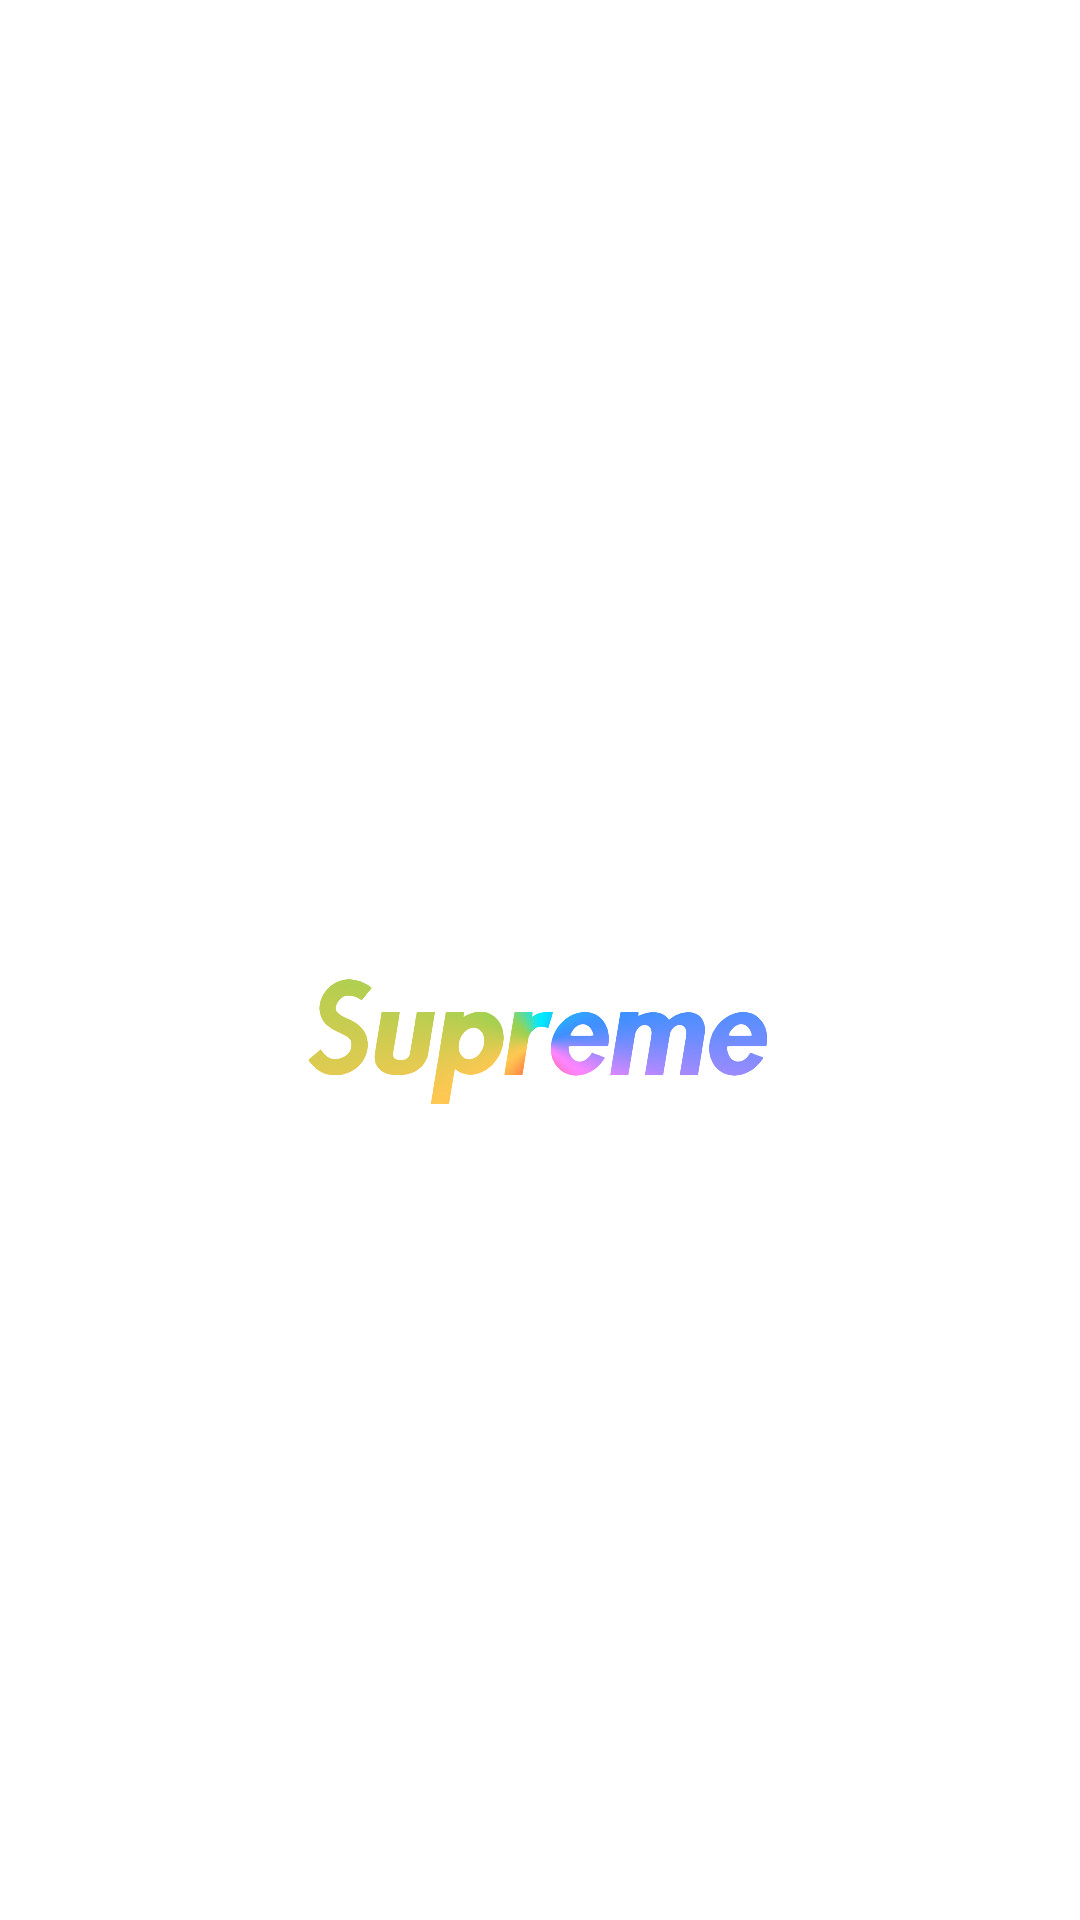 supreme15 - 23 Supreme HQ Smartphone Wallpaper Collection